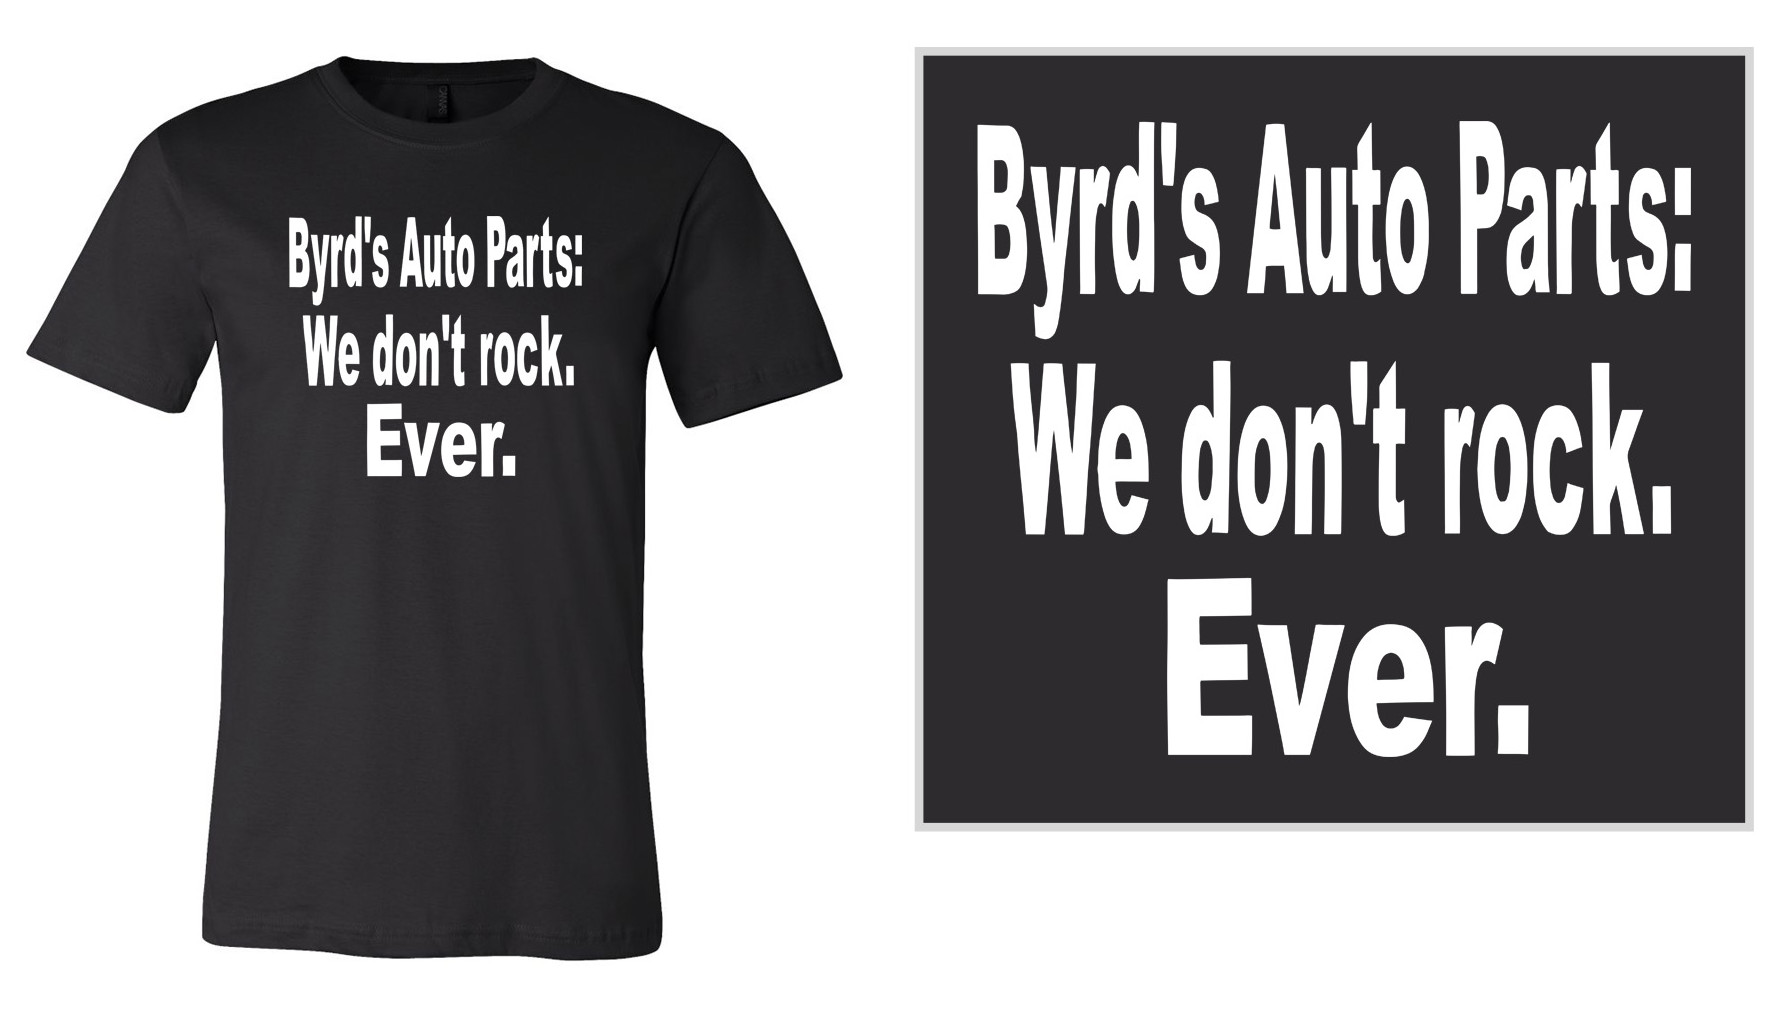 Jon-Byrd-Byrds-Auto-Mock-Up-01